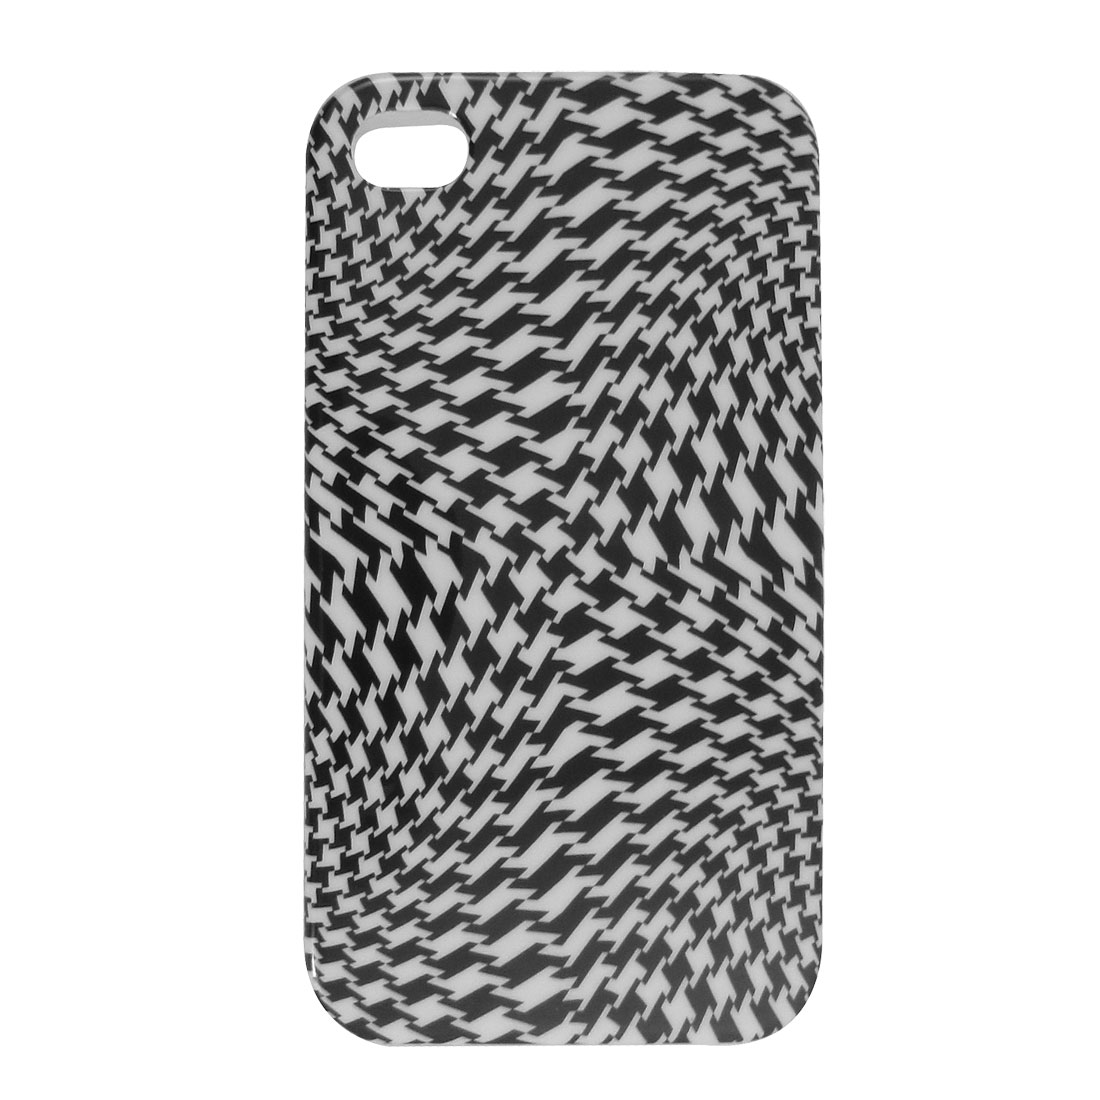 IMD White Black Houndstooth Pattern TPU Soft Plastic Cover for iPhone 4 4G